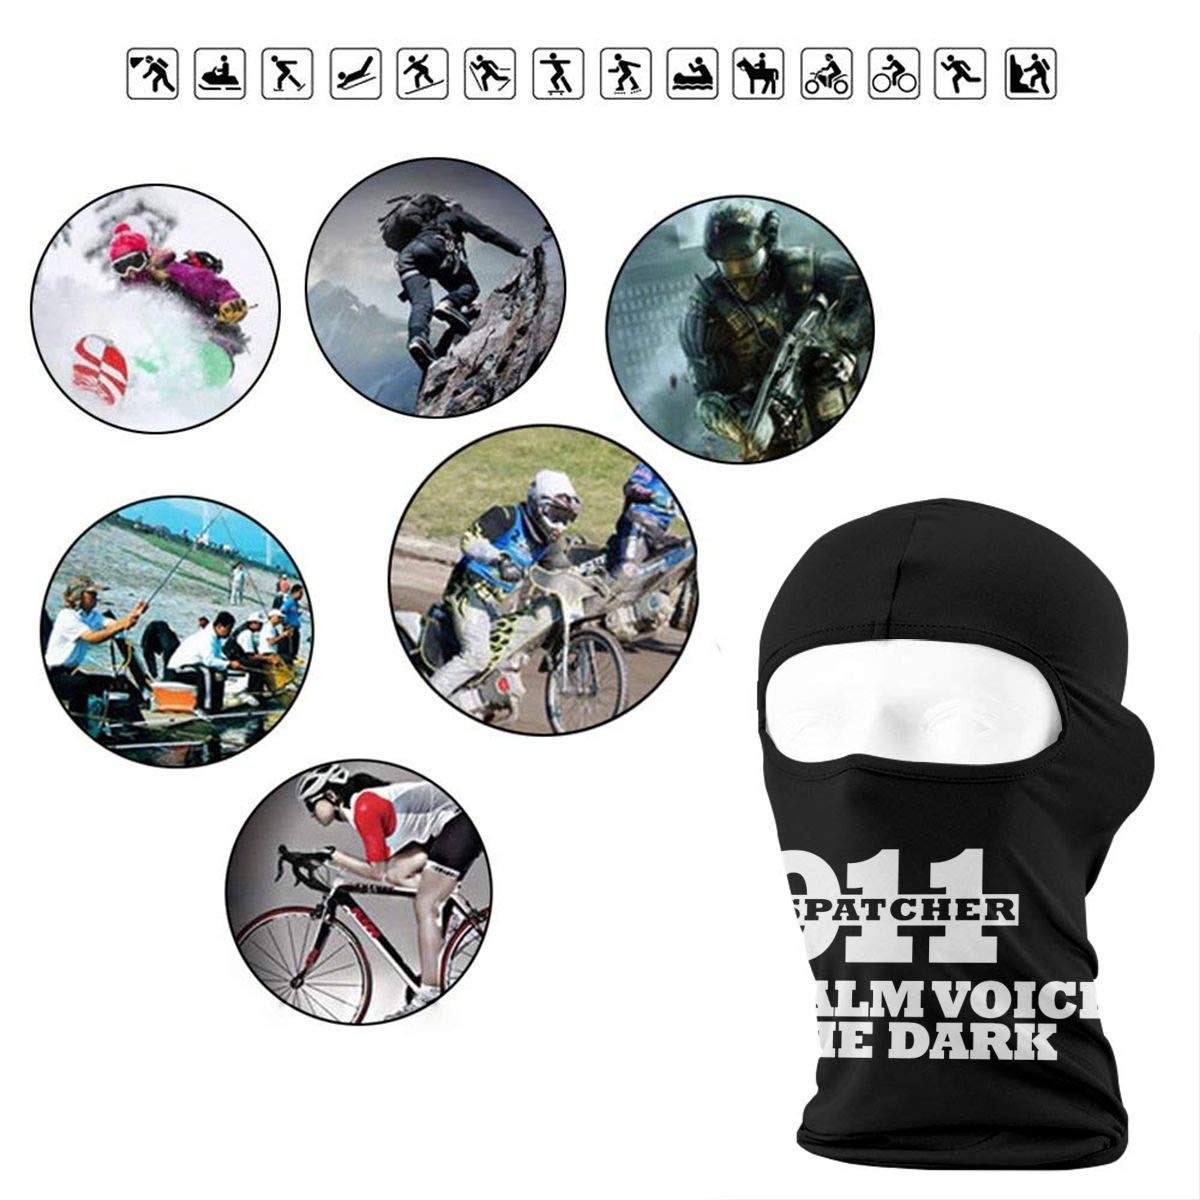 The Calm Voice in The Dark 911 Dispatcher Full Outdoor Cycling Ski Motorcycle Balaclava Mask Sunscreen Hat Windproof Cap